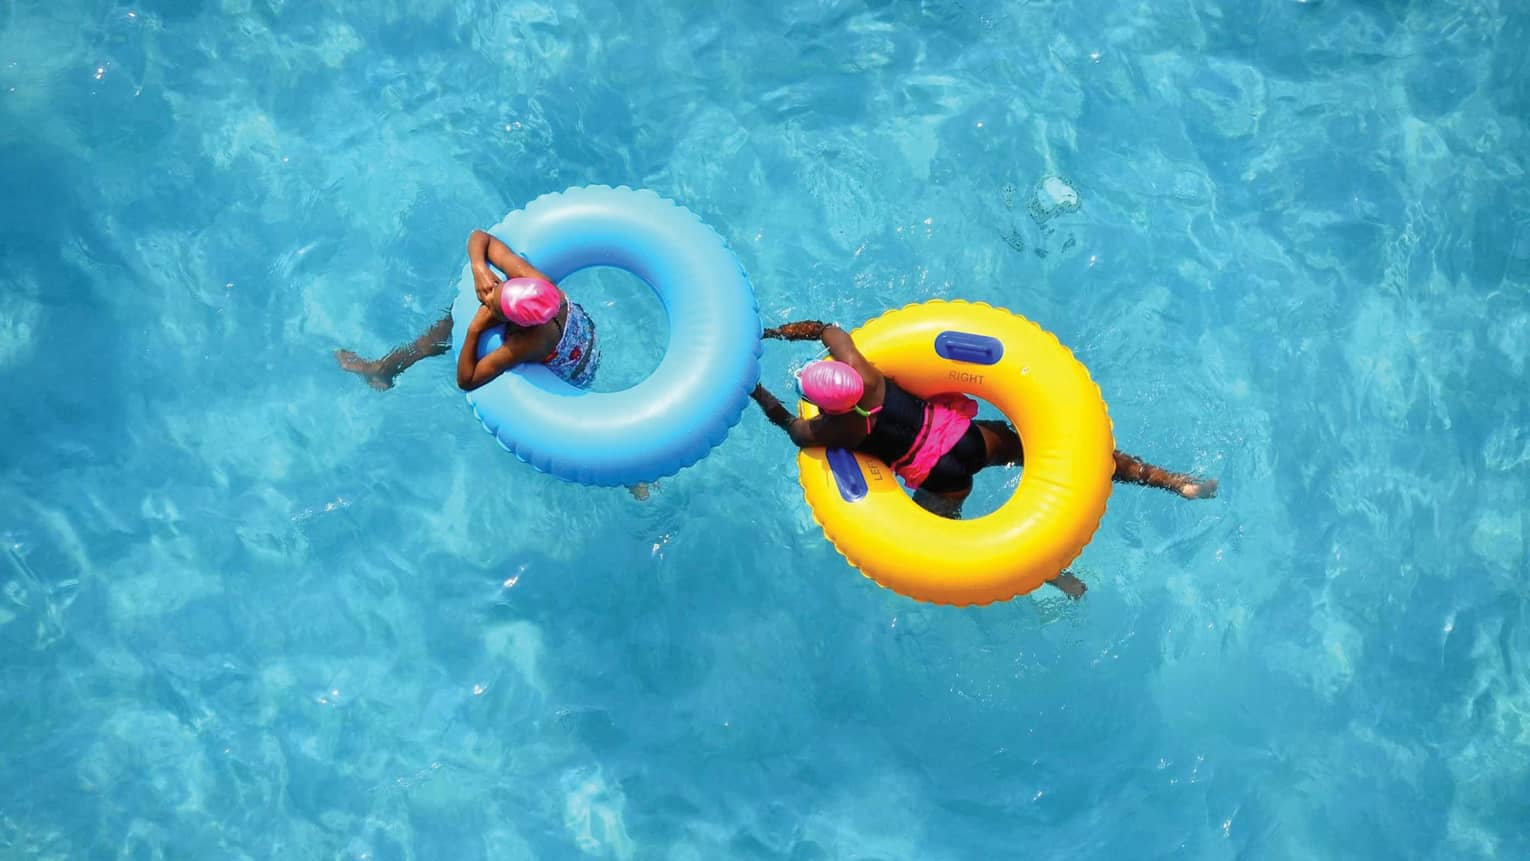 Aerial view of two swimmers in pink caps floating in blue and yellow inner tubes